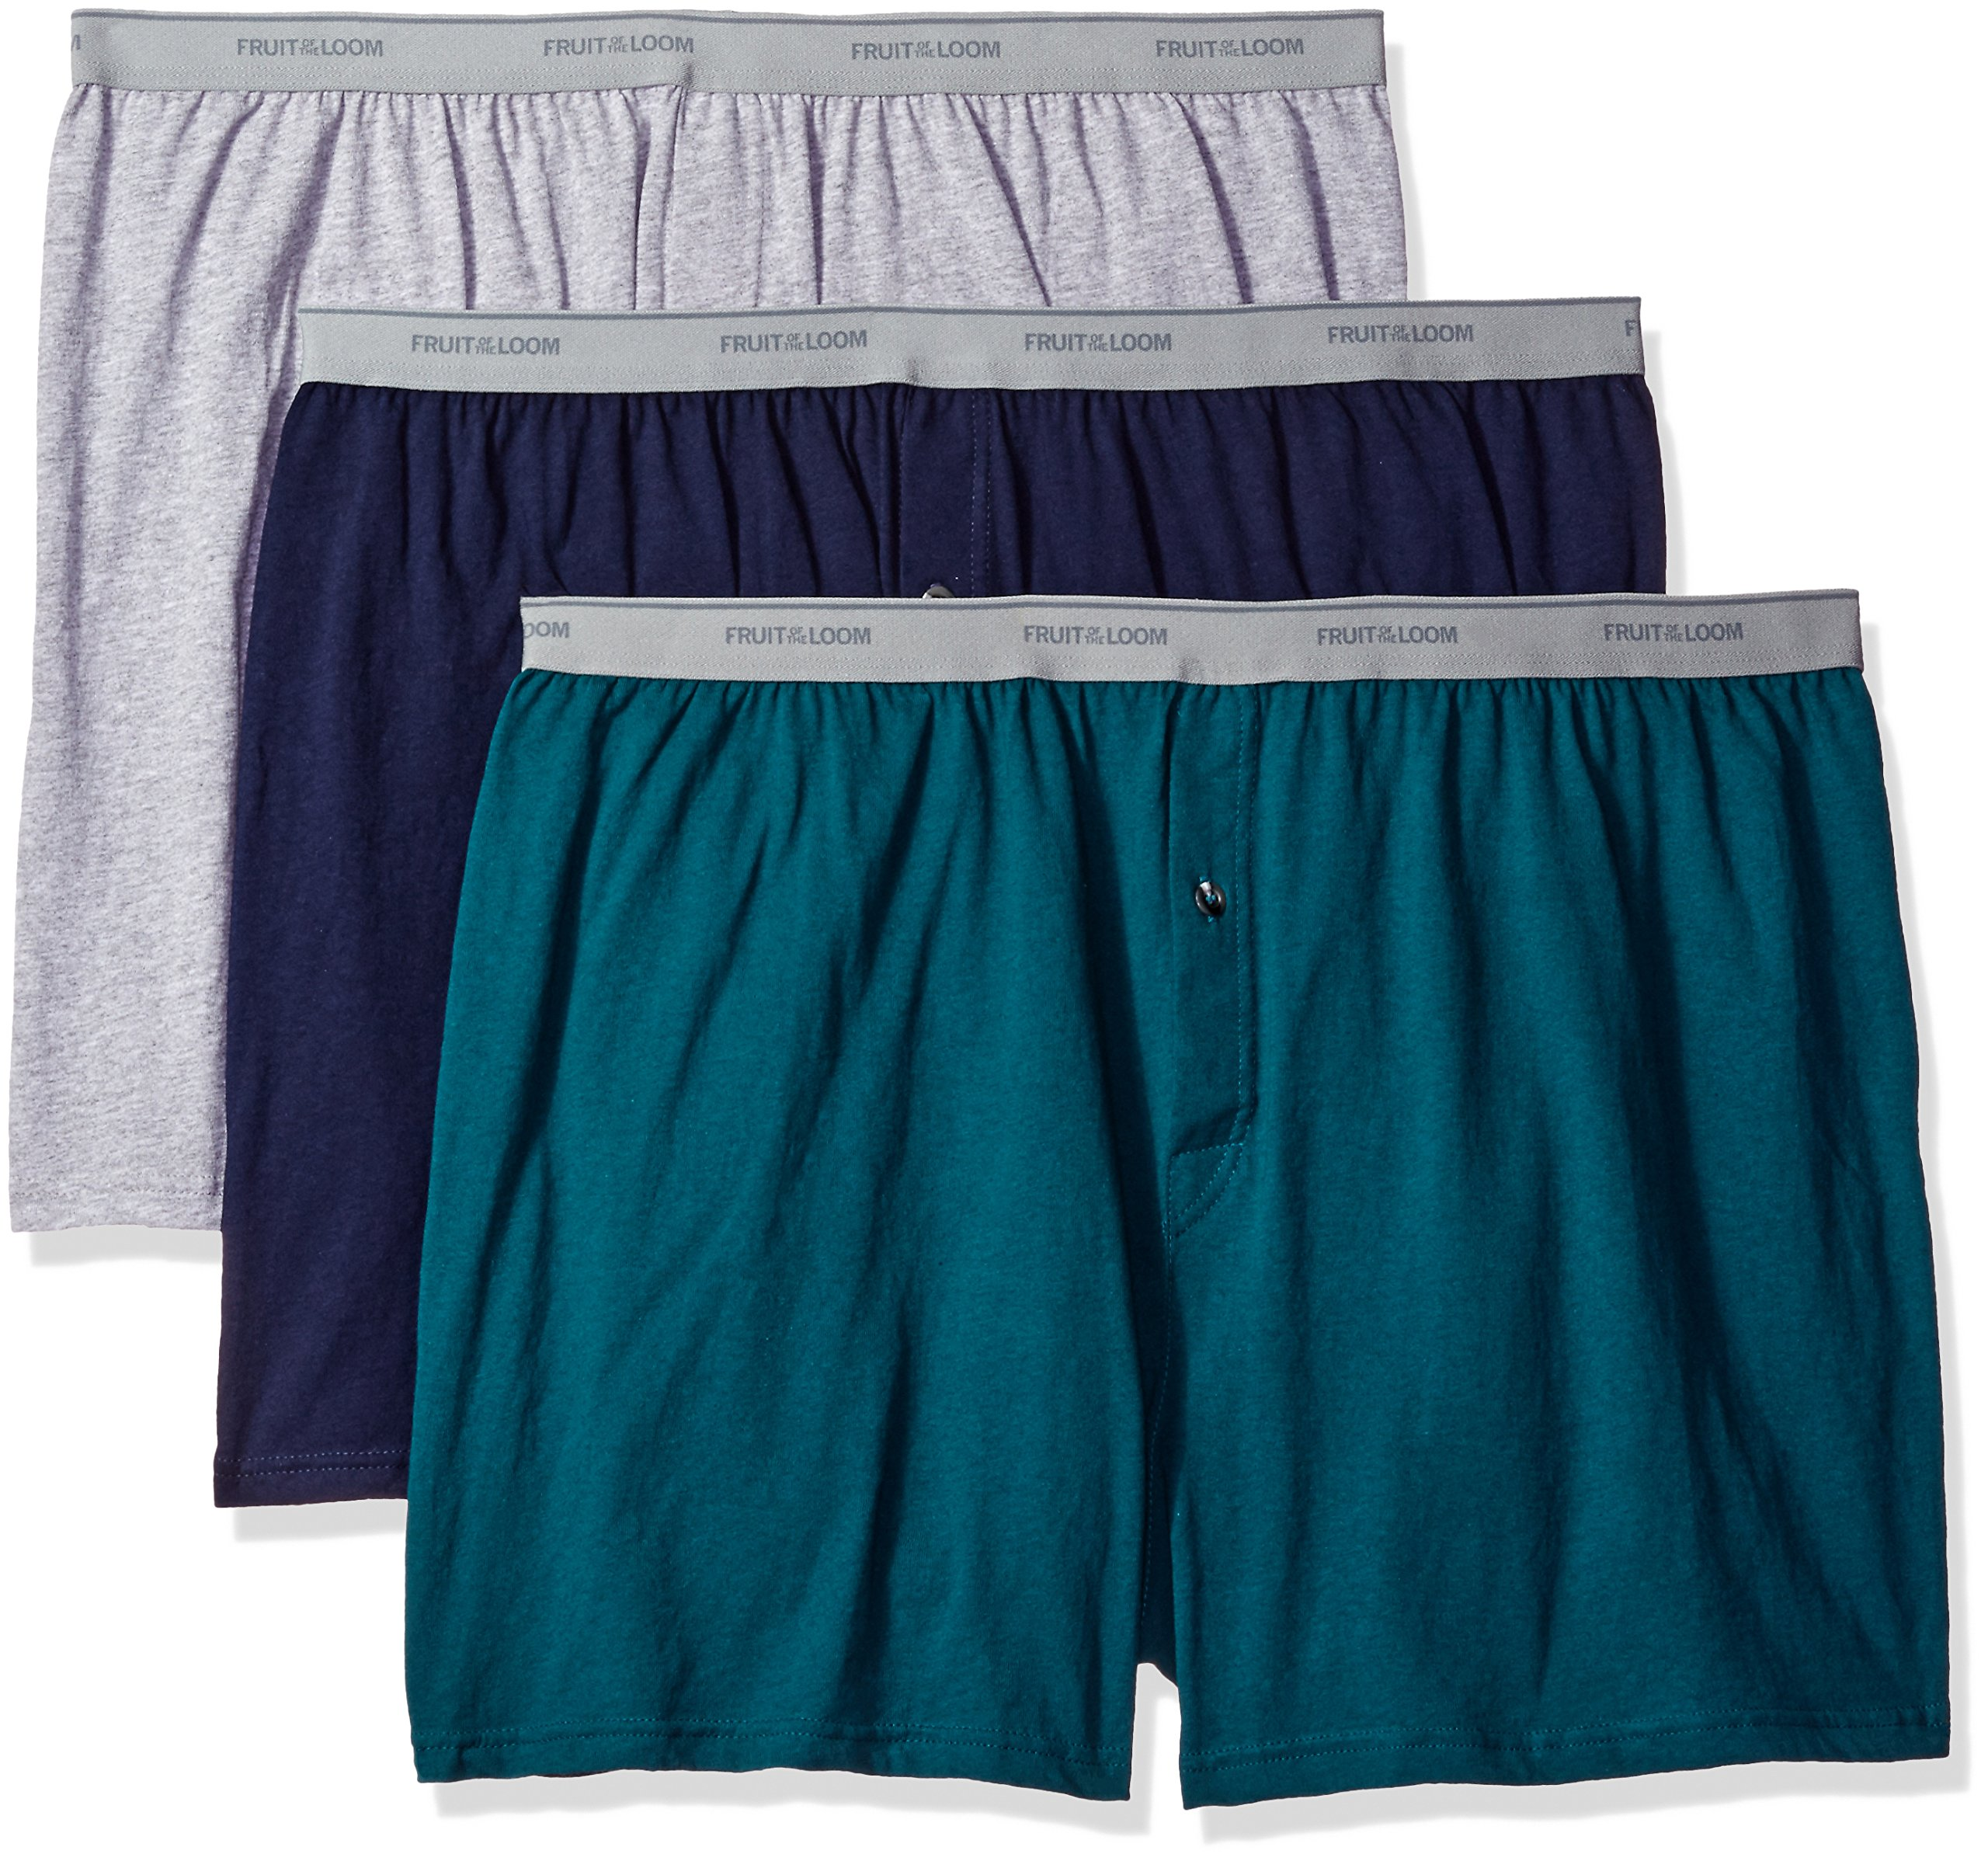 Fruit of the Loom Men's Big Man Knit Boxers (Pack of 3), Assorted Solids, 3XB by Fruit of the Loom